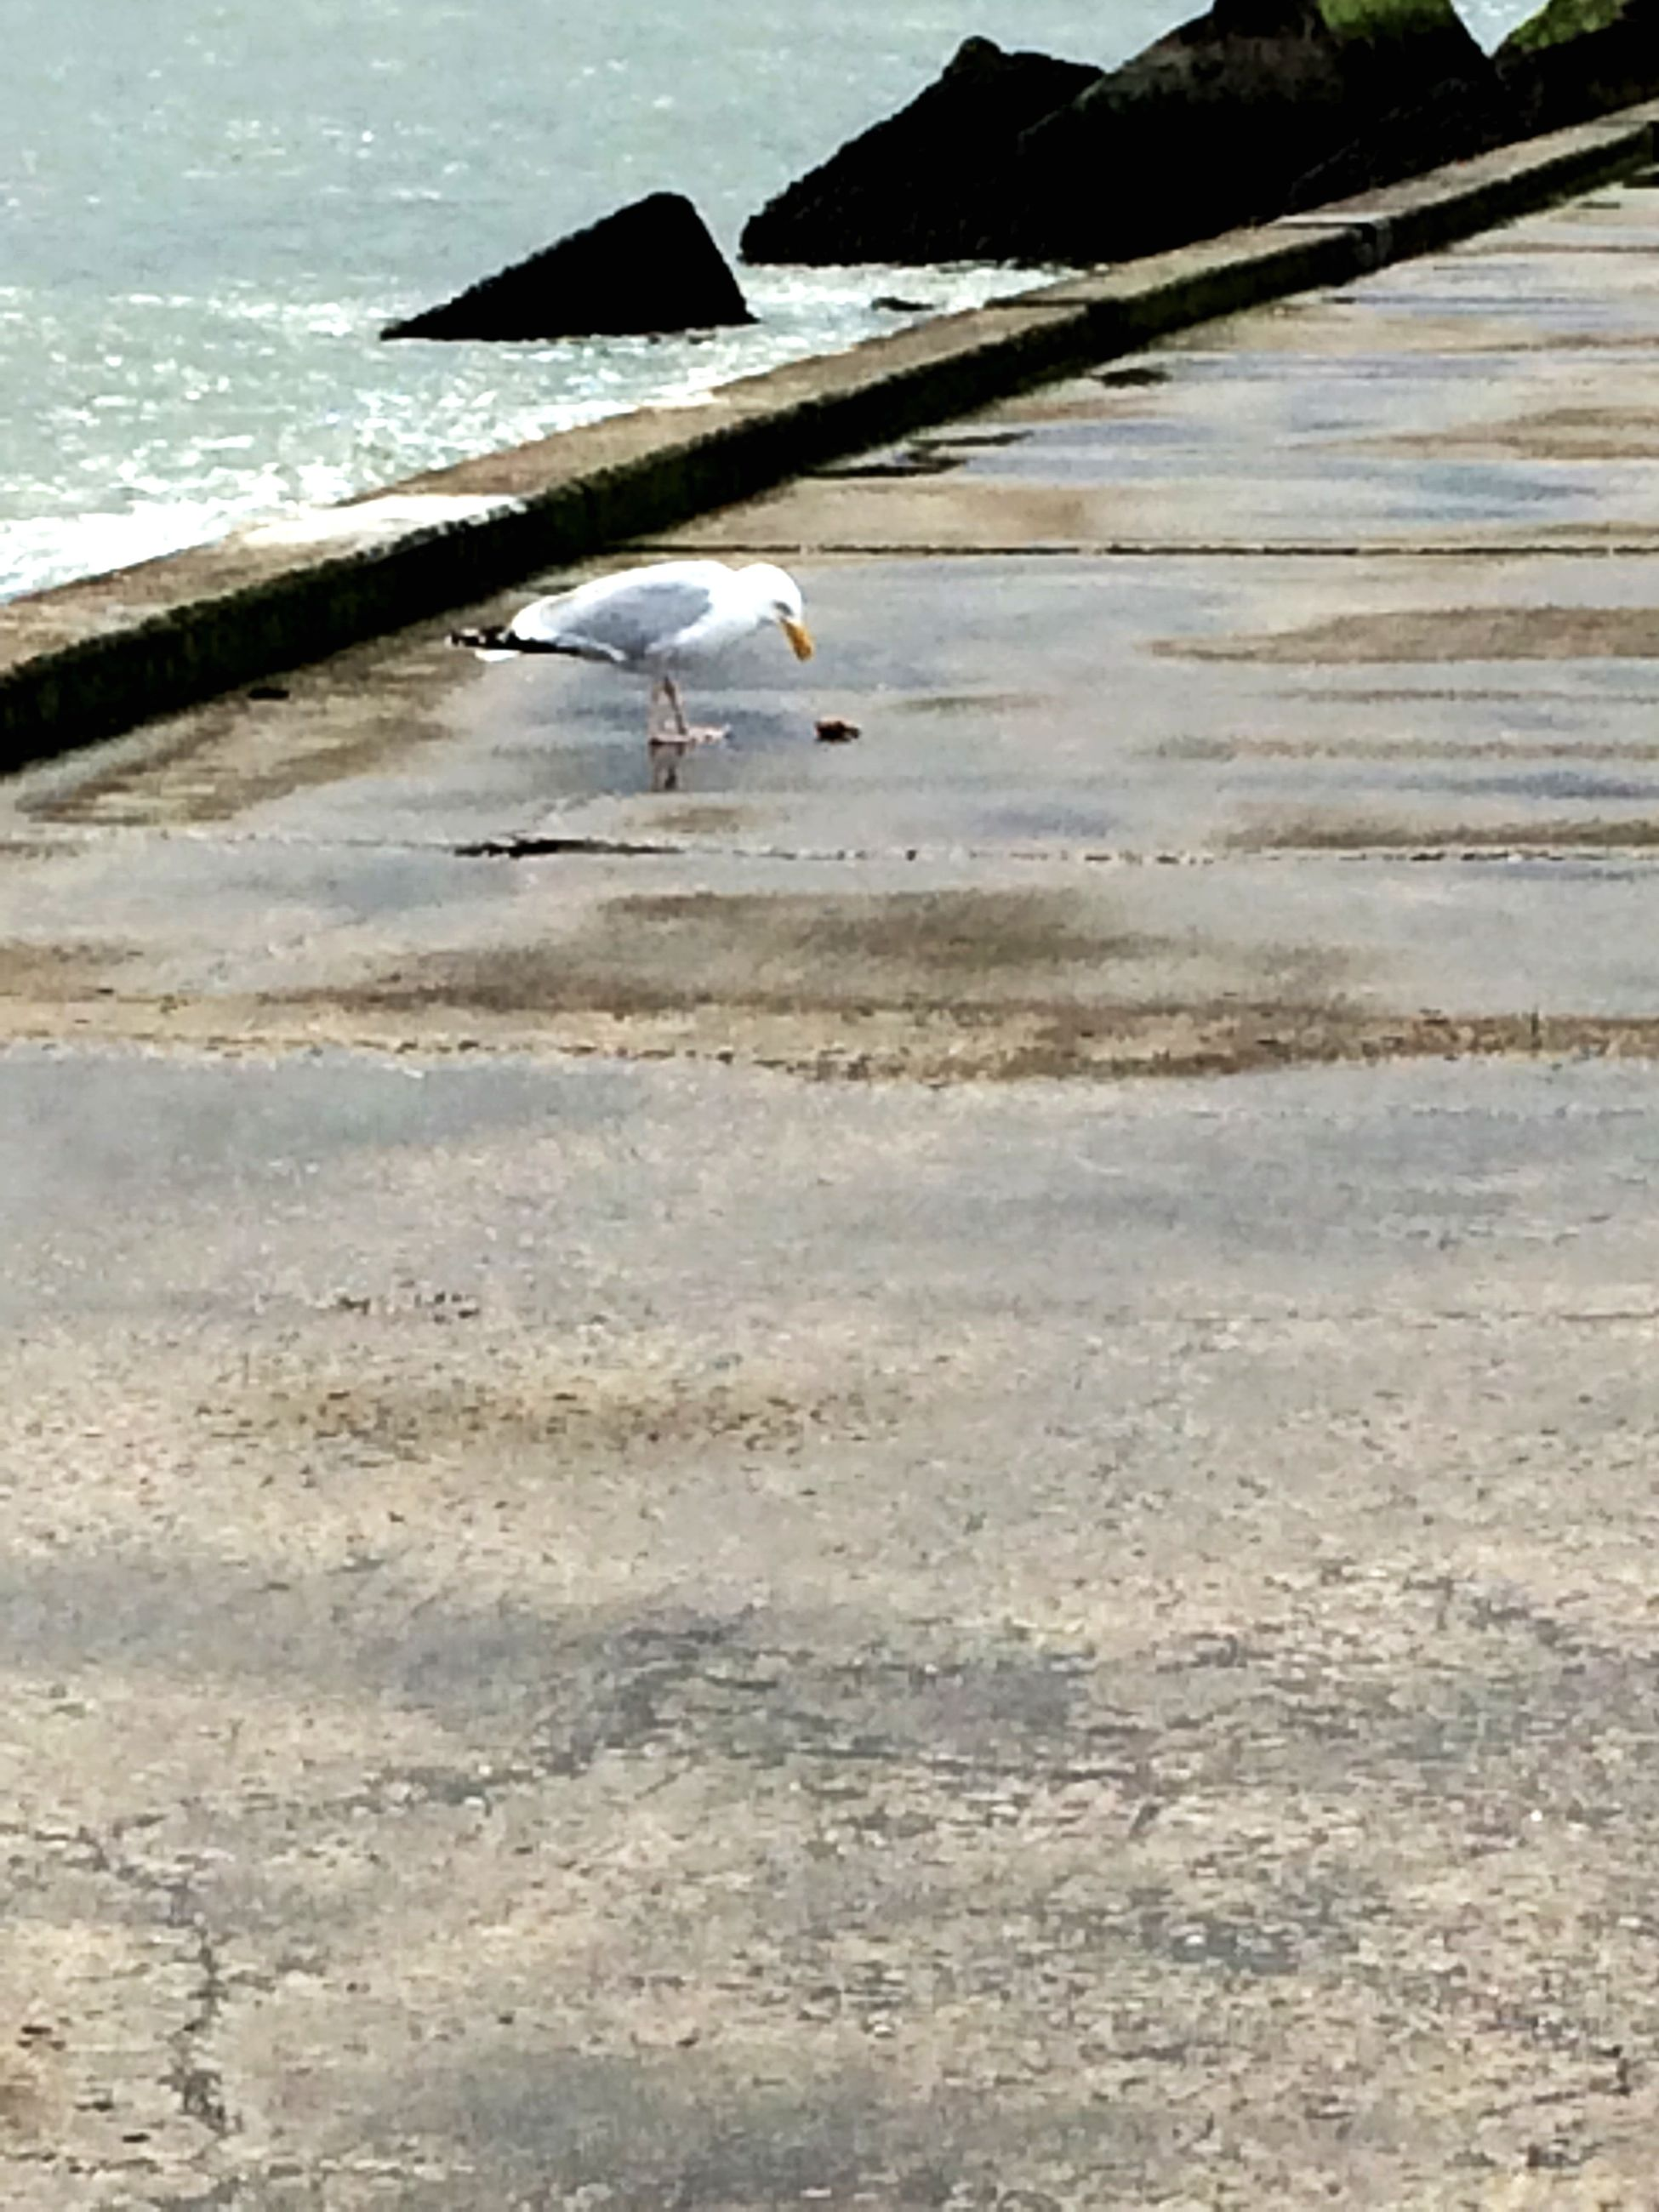 bird, beach, animal themes, sea, water, flying, animals in the wild, wildlife, sand, seagull, shore, one animal, day, spread wings, sunlight, wave, nature, outdoors, full length, mid-air